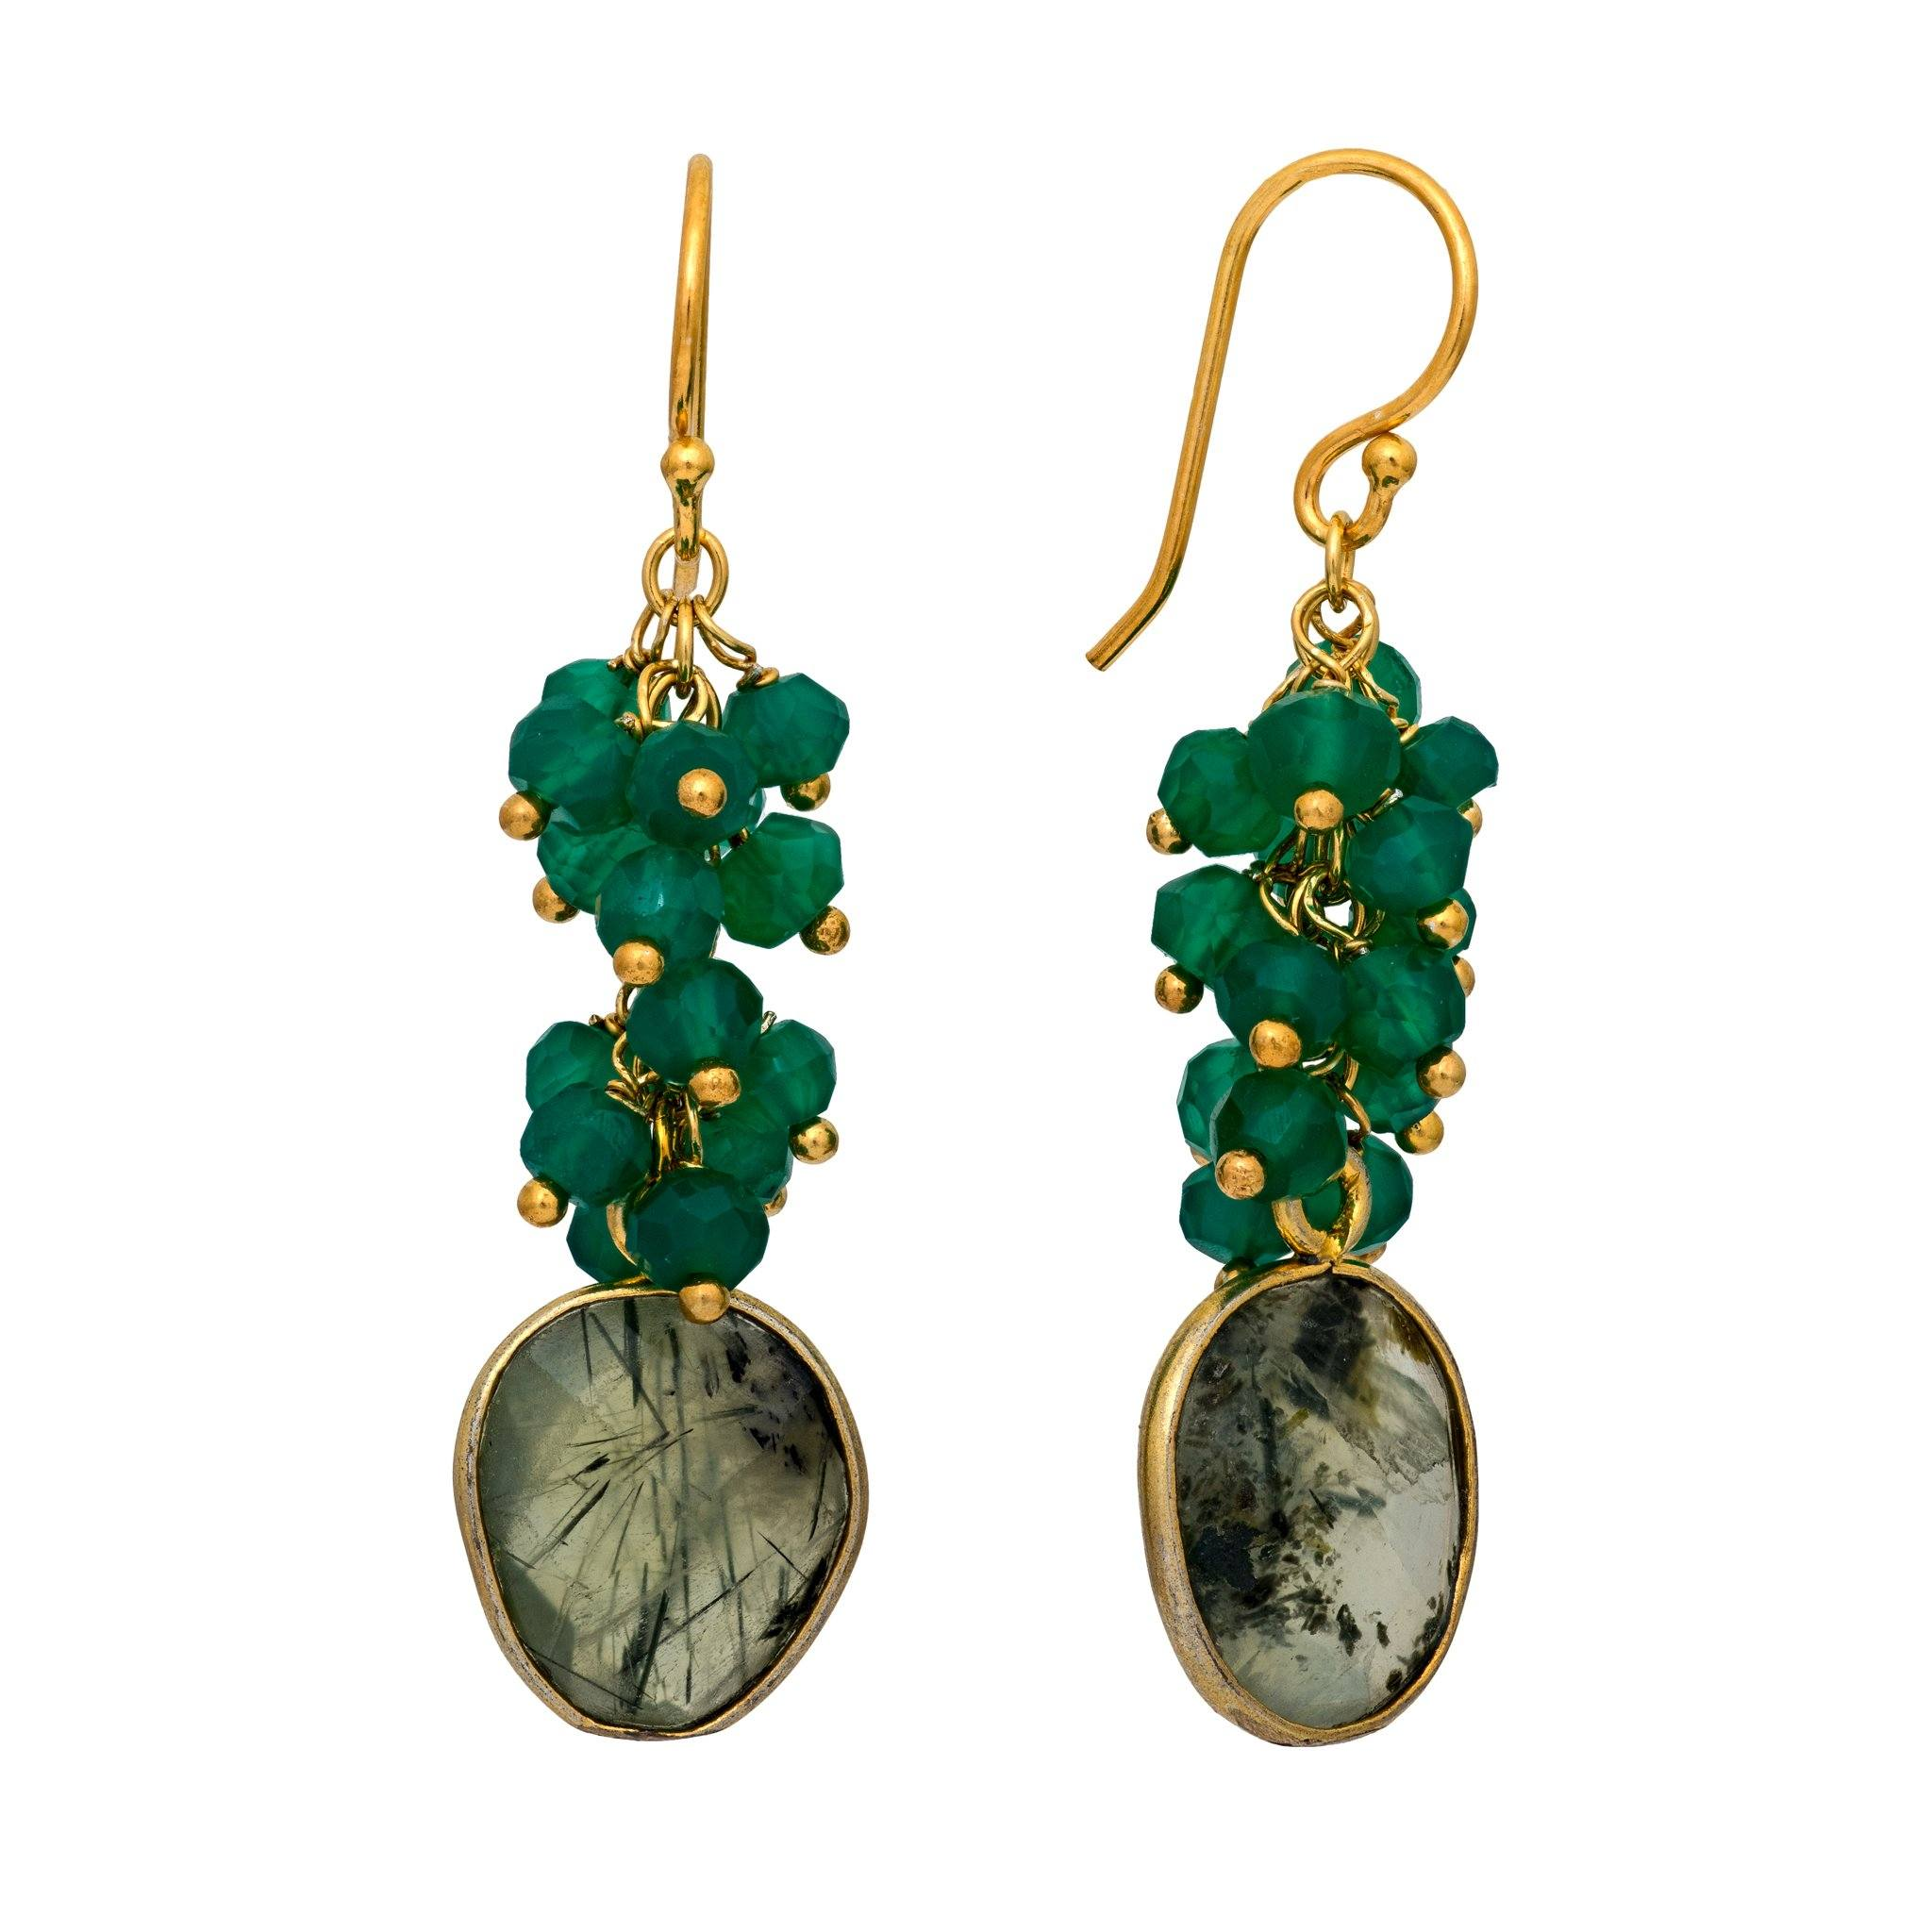 KAI green onyx cluster earrings